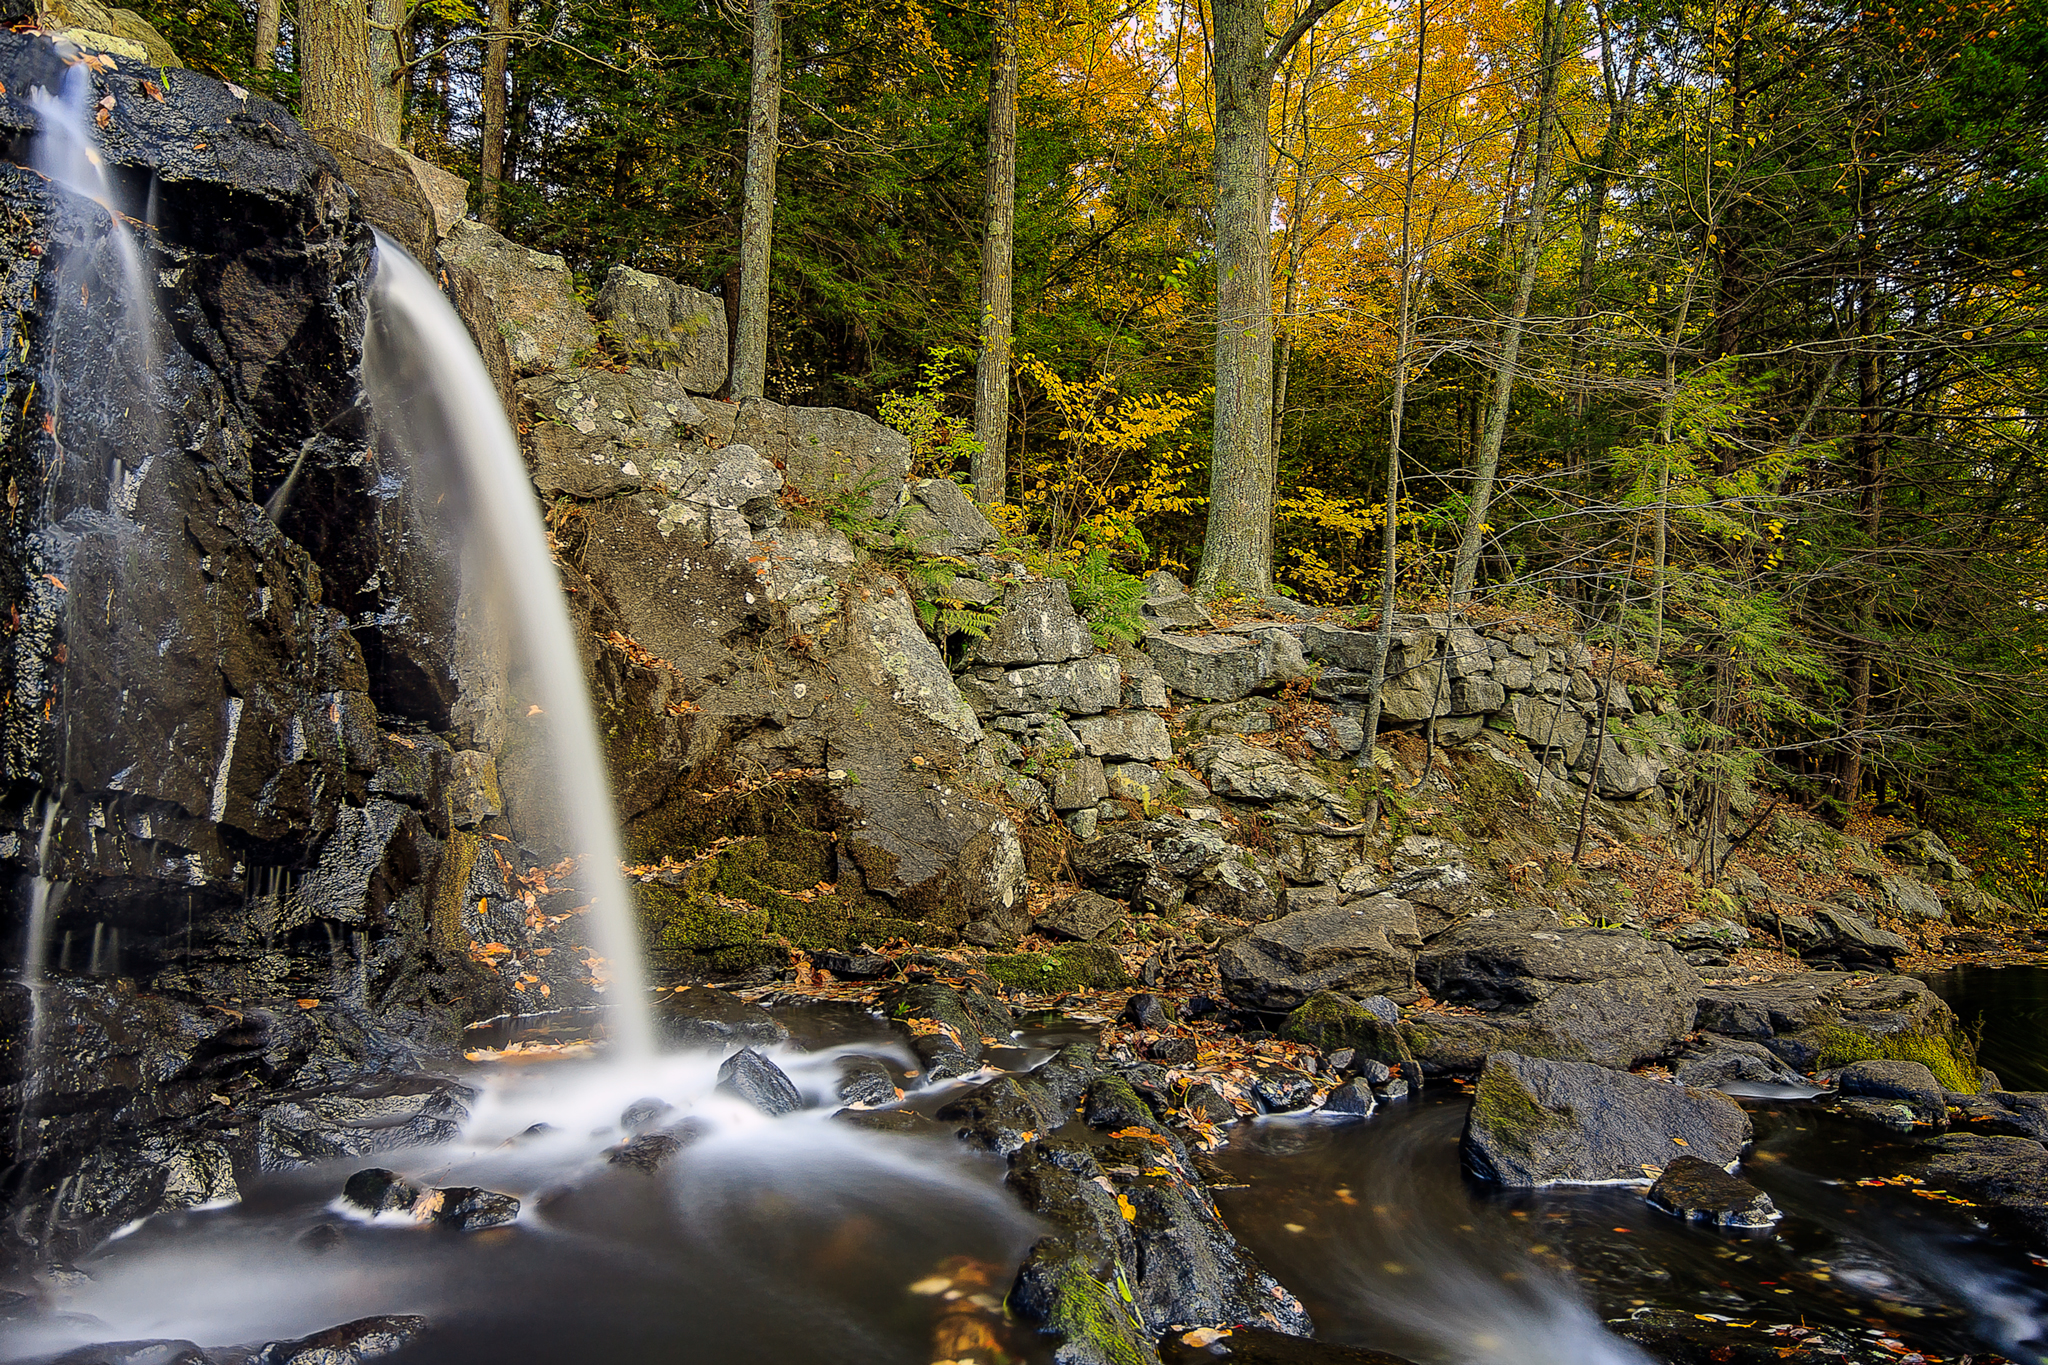 Taken at Southford Falls State Park in Southbury, Connecticut, USA.